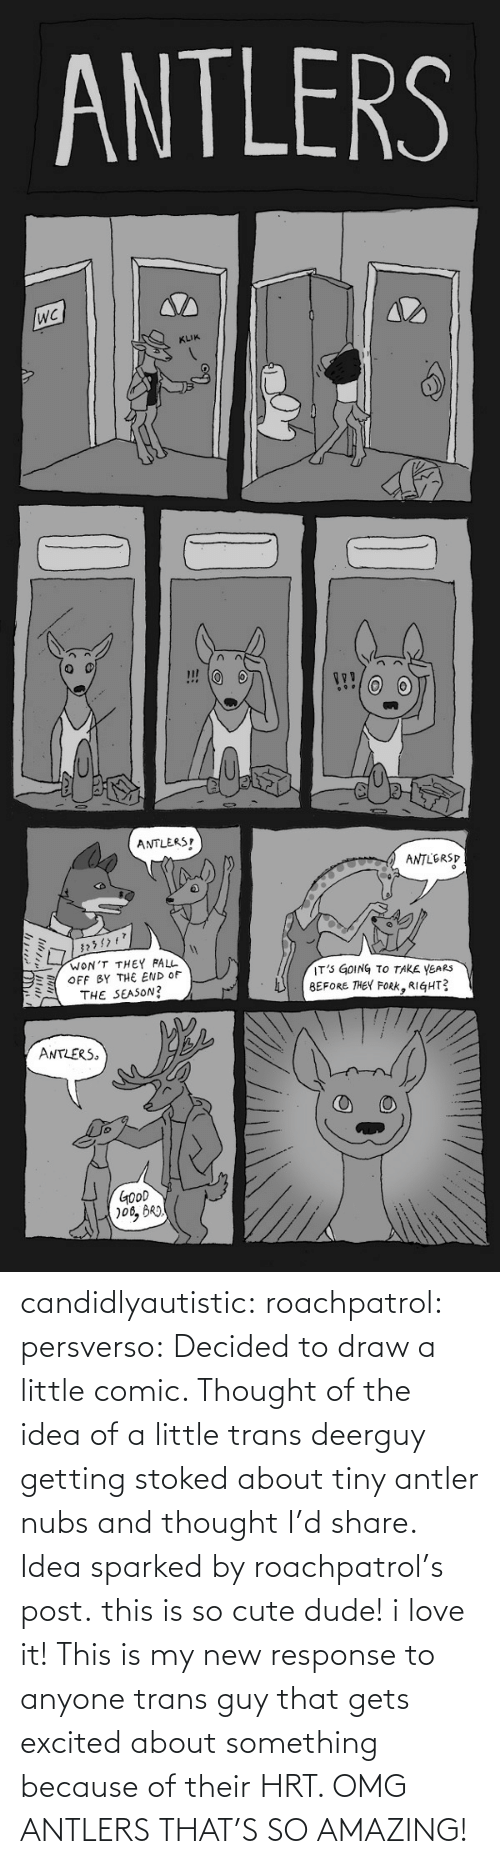 Response: ANTLERS  KLIK  ANTLERS  ANTLERSP  WON'T THEY FALL  OFF BY THE END OF  THE SEASON?  IT' GOING TO TAKE YEARS  BEFORE THEY FoRK, RIGHT?  ミ  ANTLERS  GOoD candidlyautistic: roachpatrol:  persverso:  Decided to draw a little comic. Thought of the idea of a little trans deerguy getting stoked about tiny antler nubs and thought I'd share. Idea sparked by roachpatrol's post.  this is so cute dude! i love it!  This is my new response to anyone trans guy that gets excited about something because of their HRT. OMG ANTLERS THAT'S SO AMAZING!